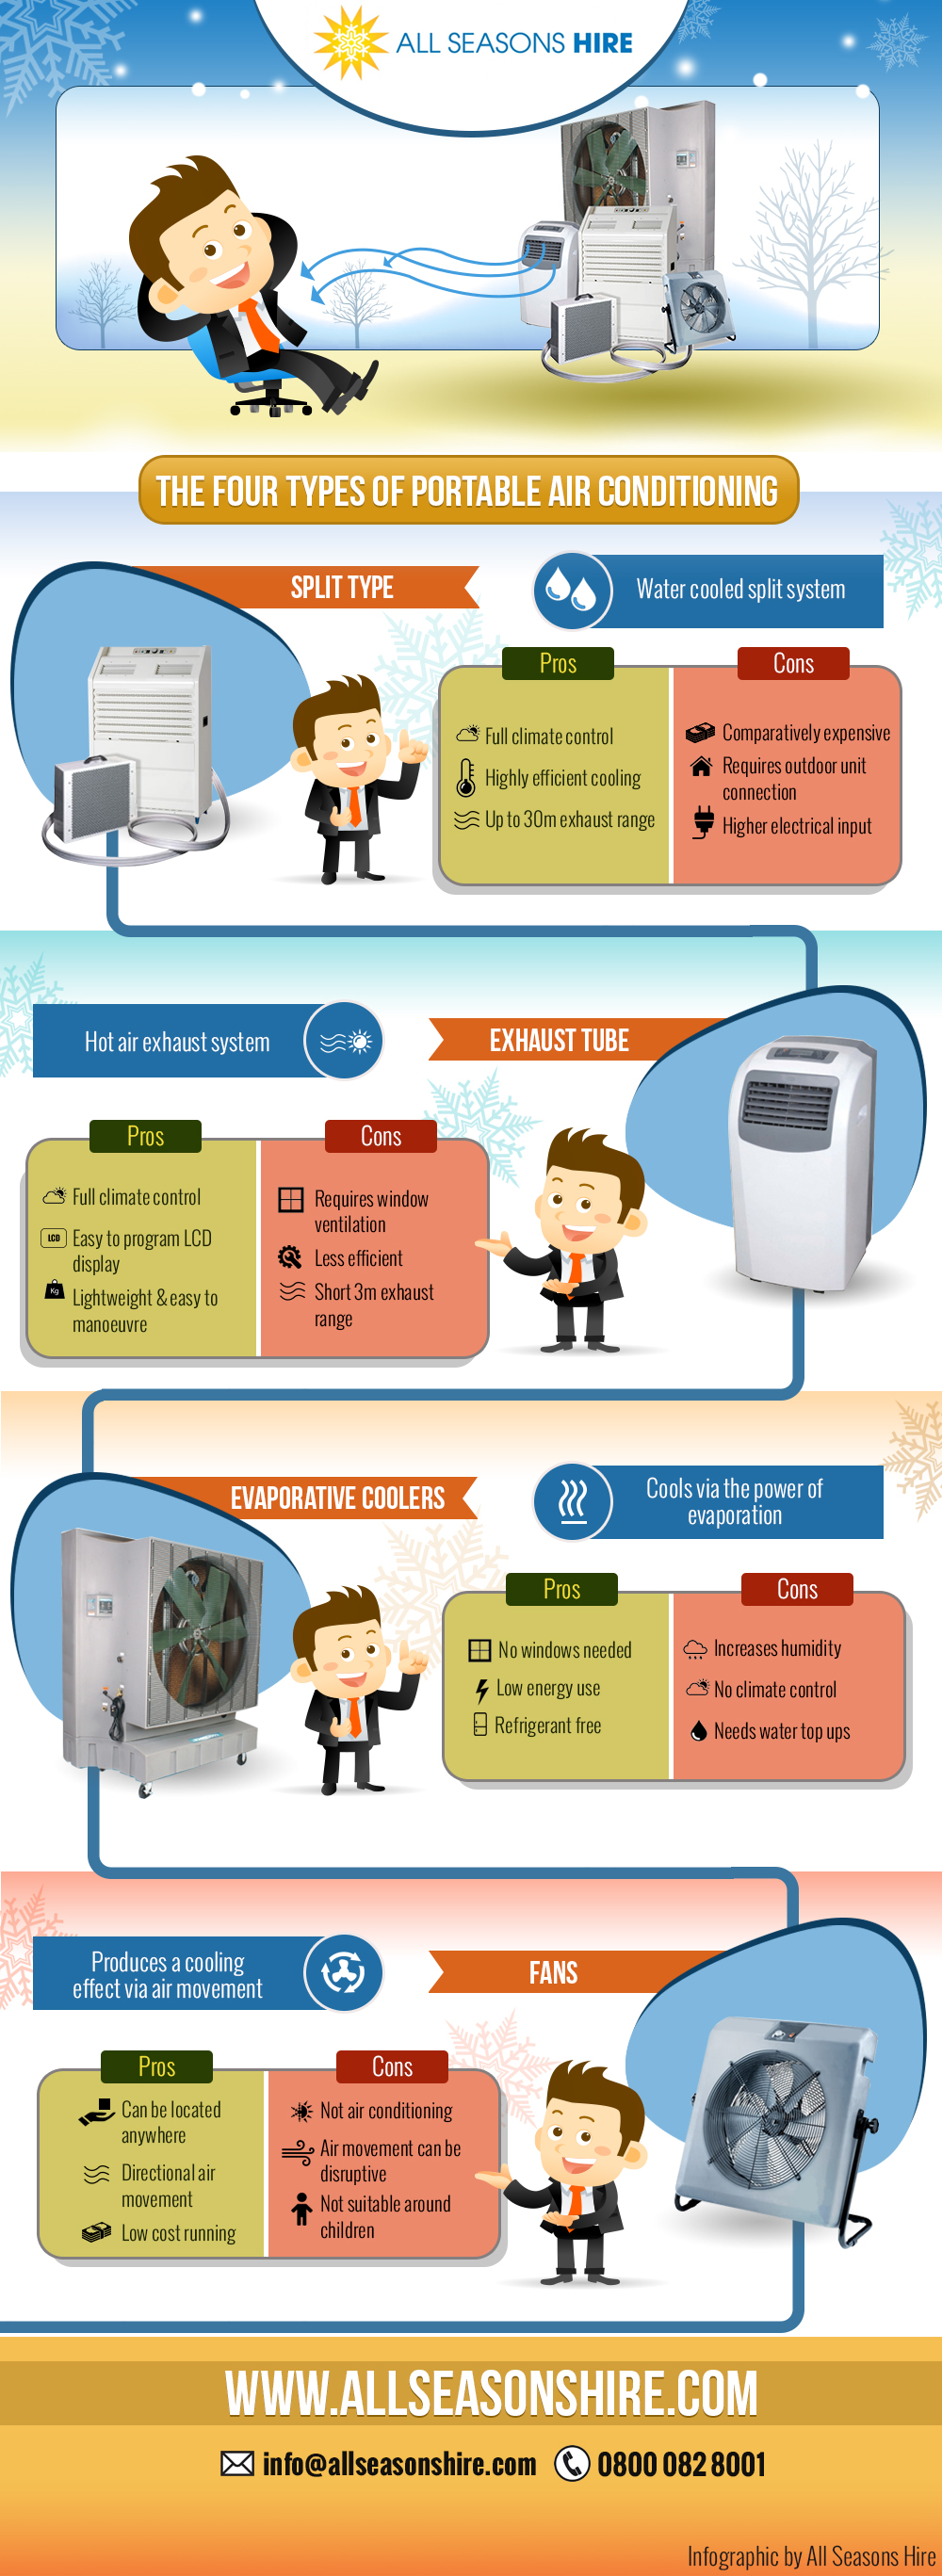 The Four Types of Portable Air Conditioning